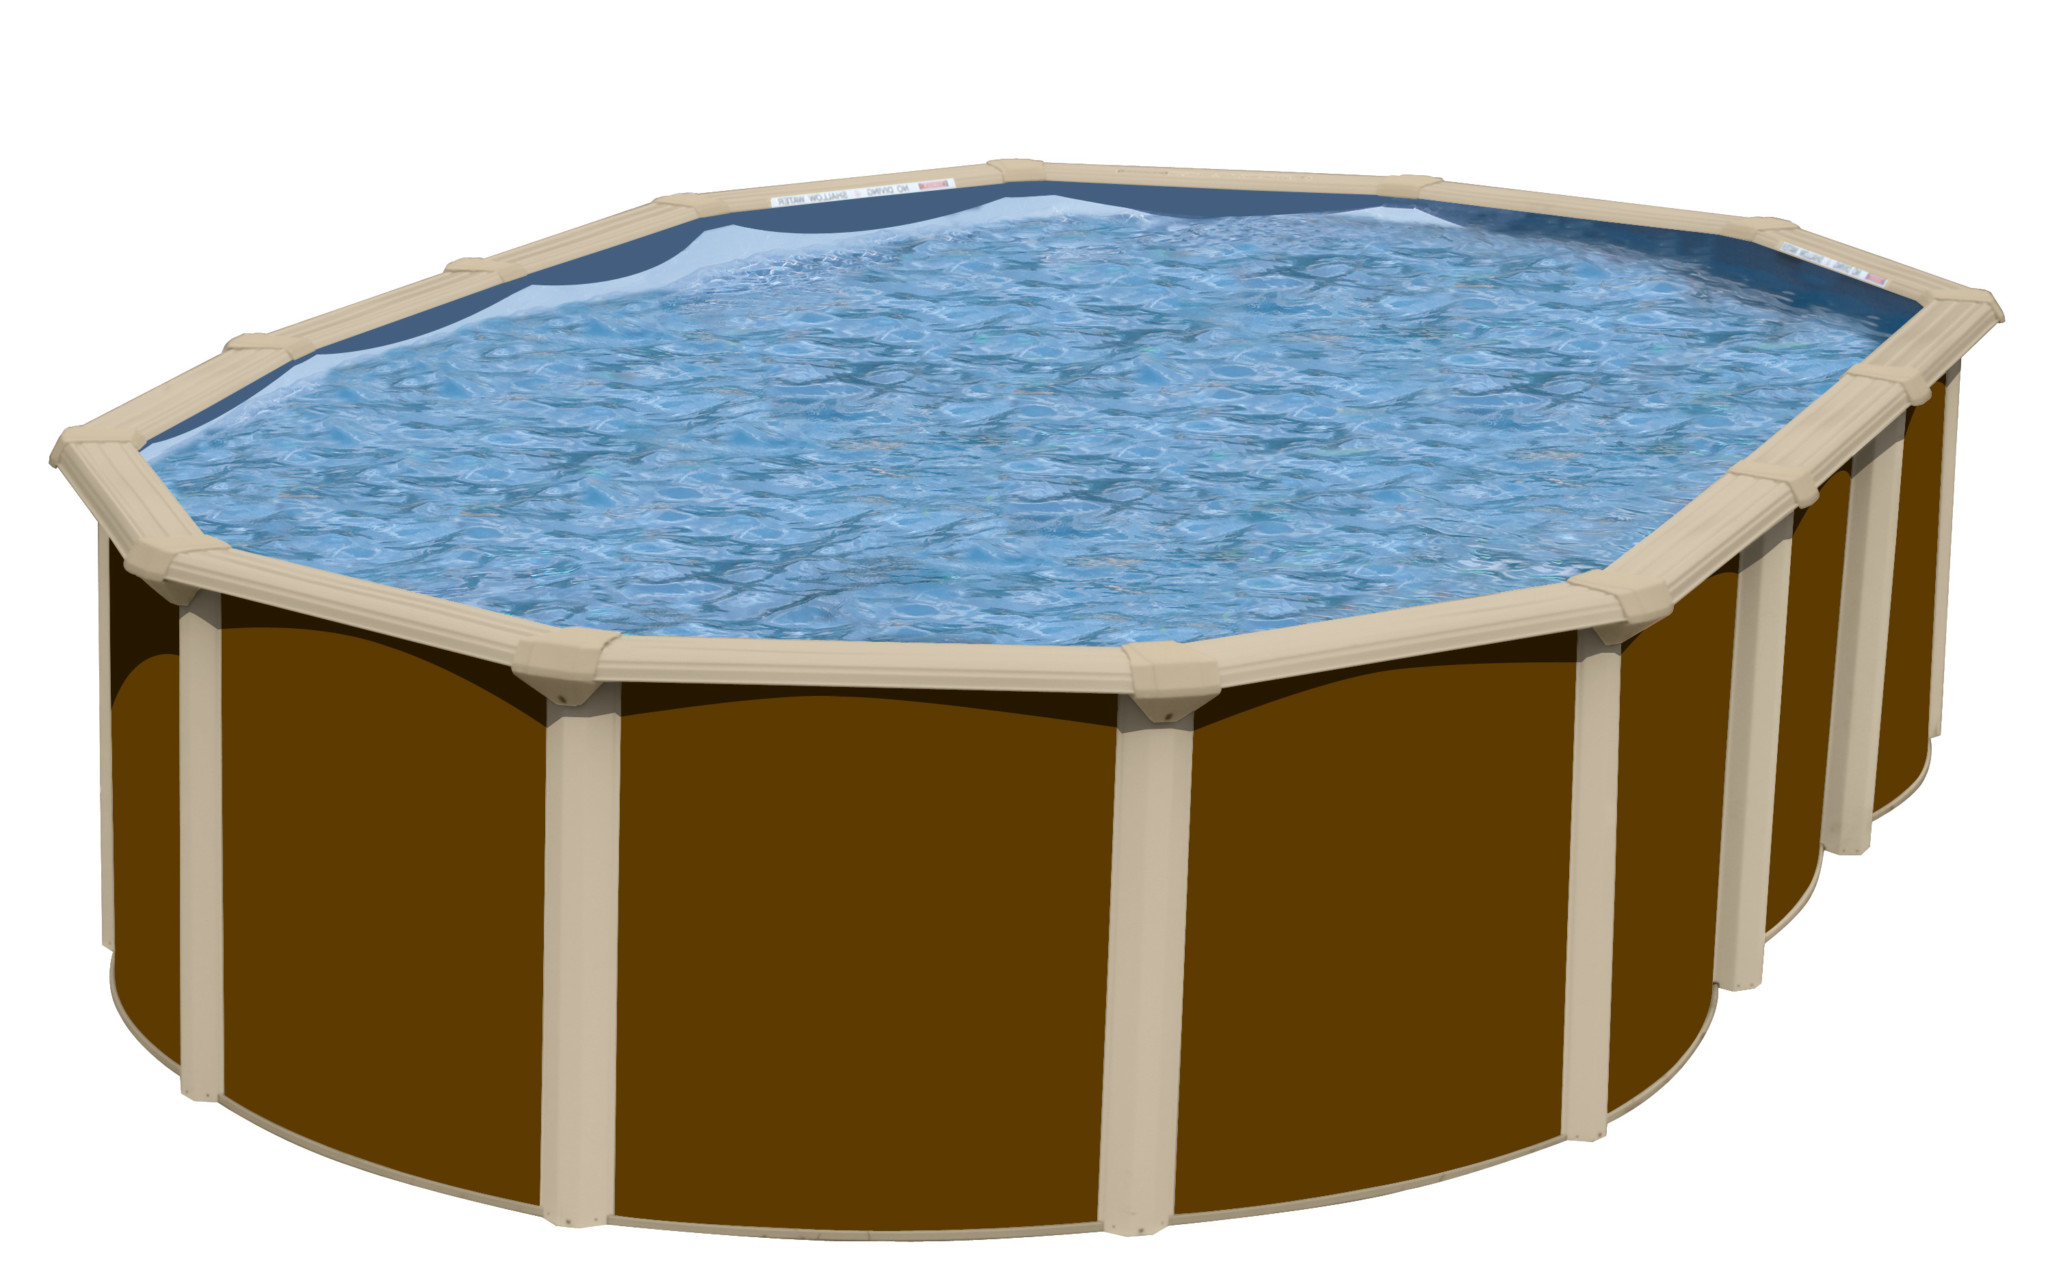 How to build a non brace oval pool swimming pool discounters - Swimming pool discounters ...